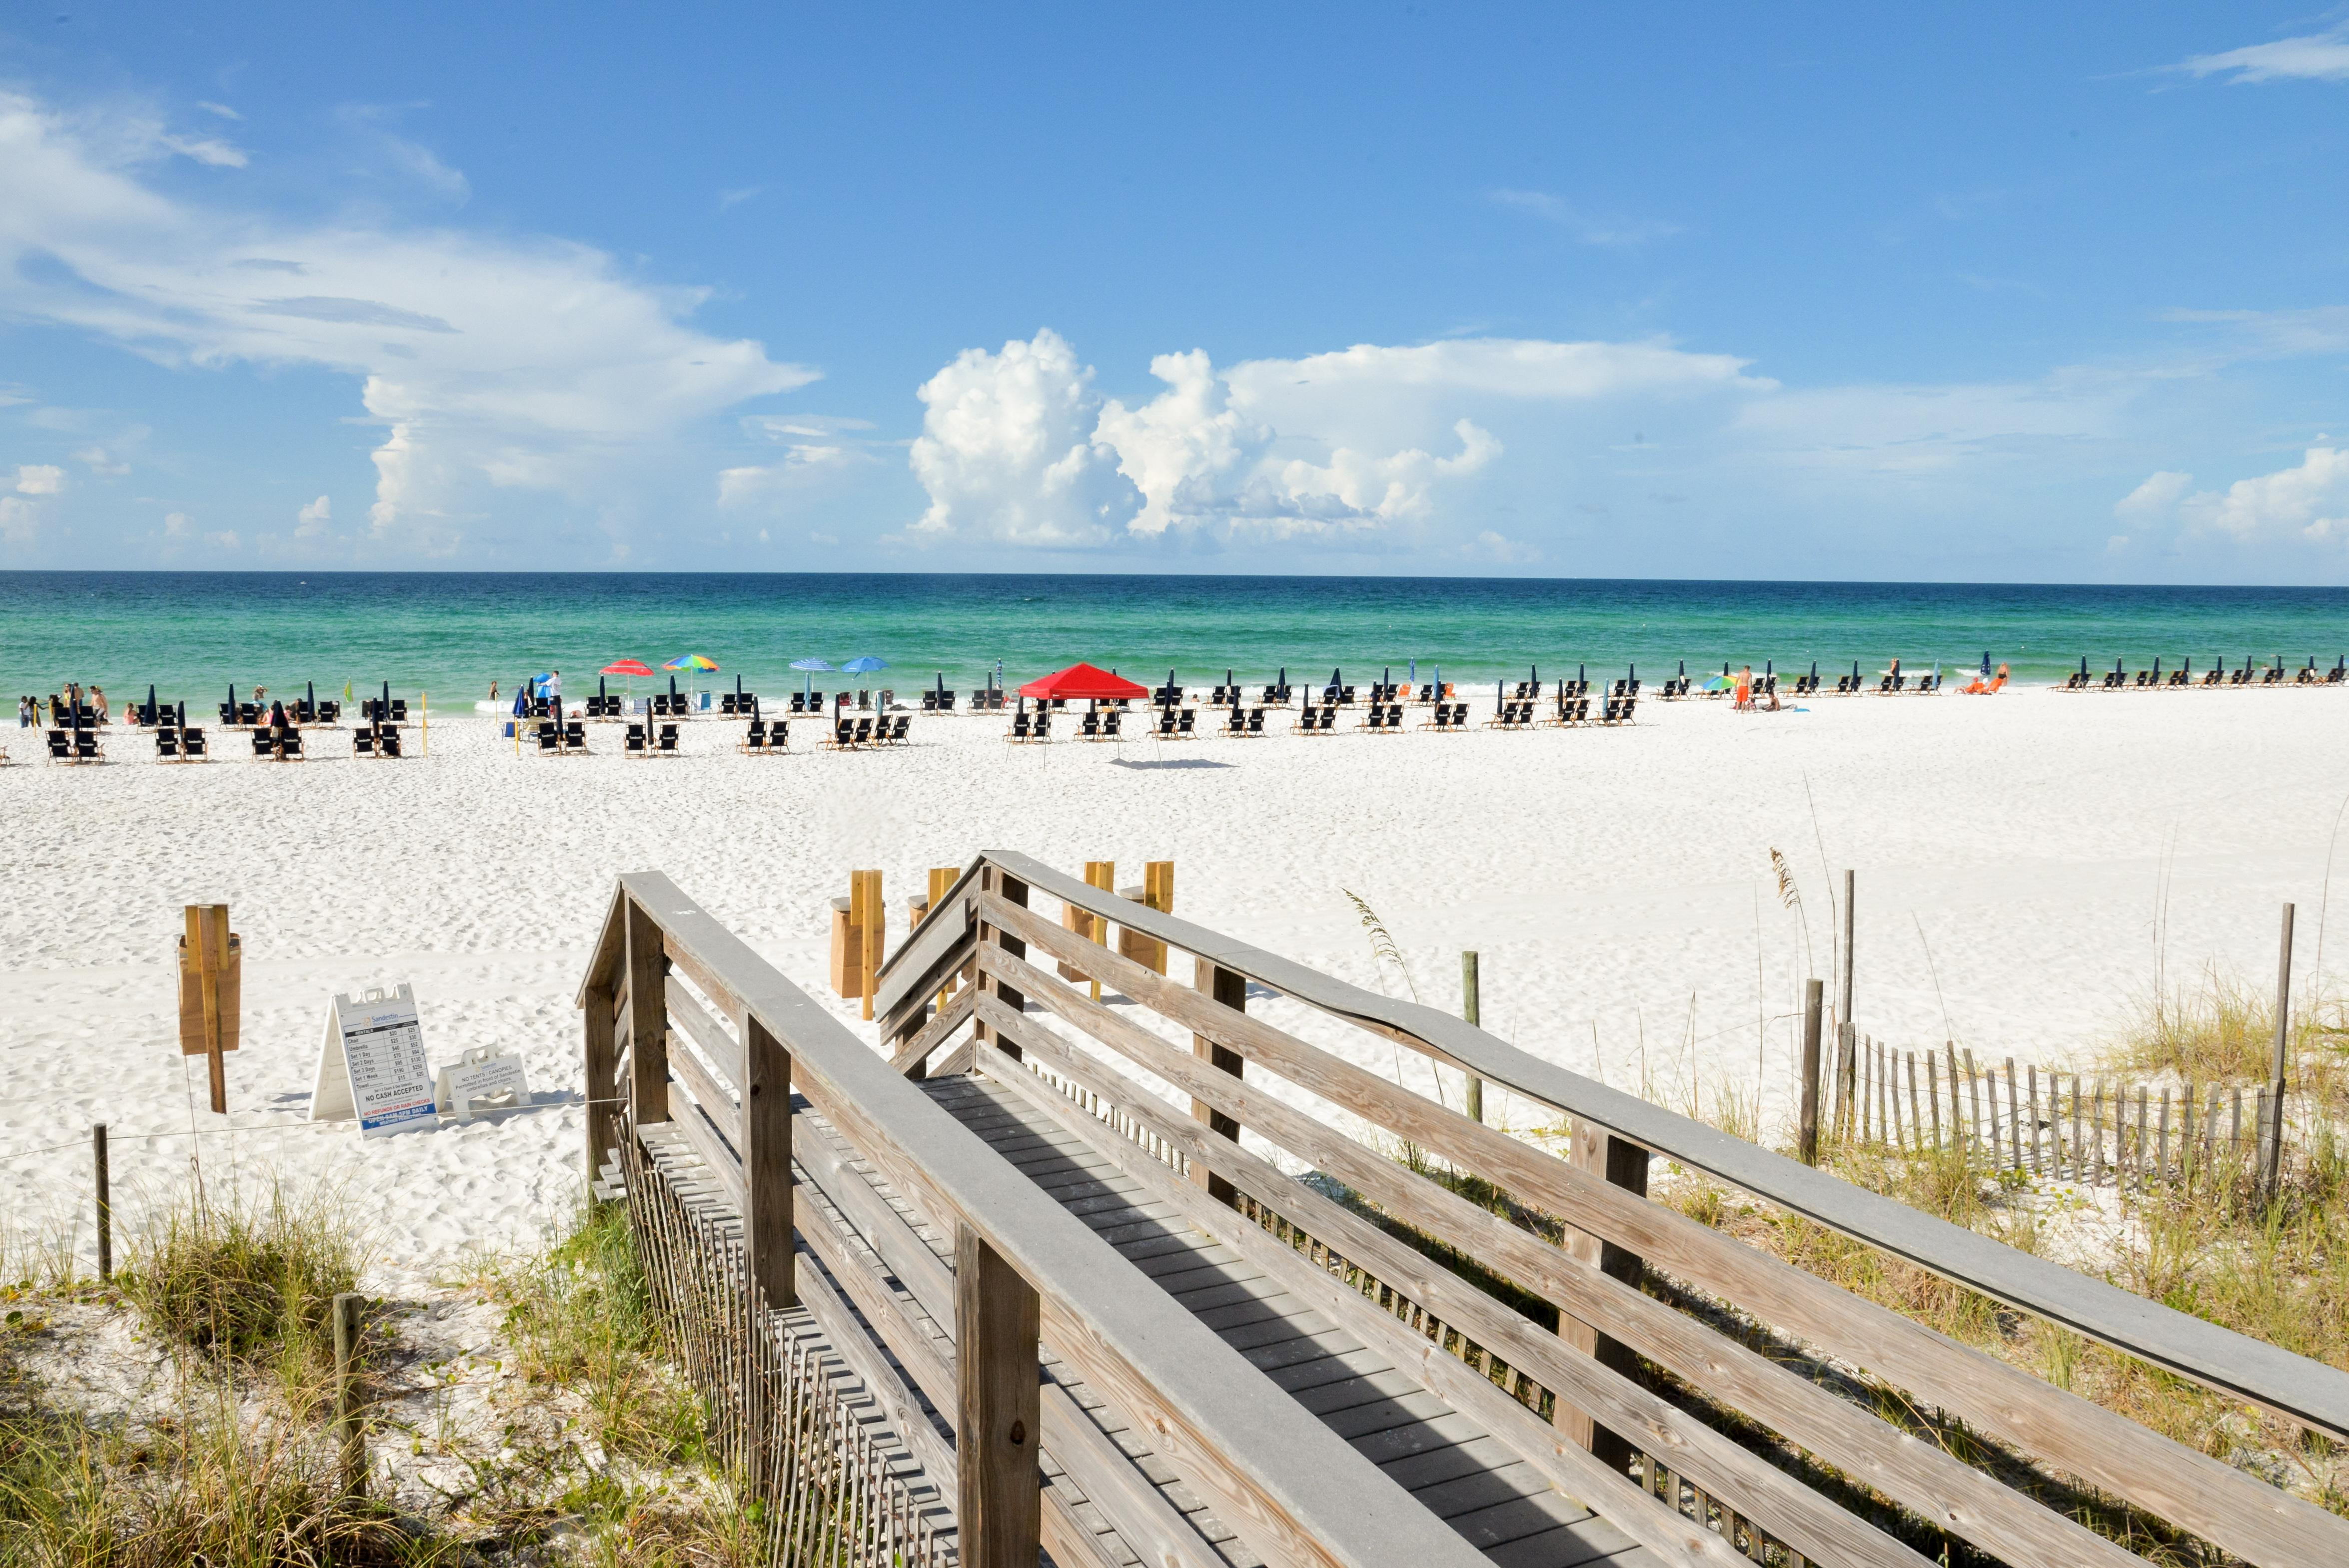 This conveniently located resort condo sits just 0.2 miles from incredible Destin beaches.